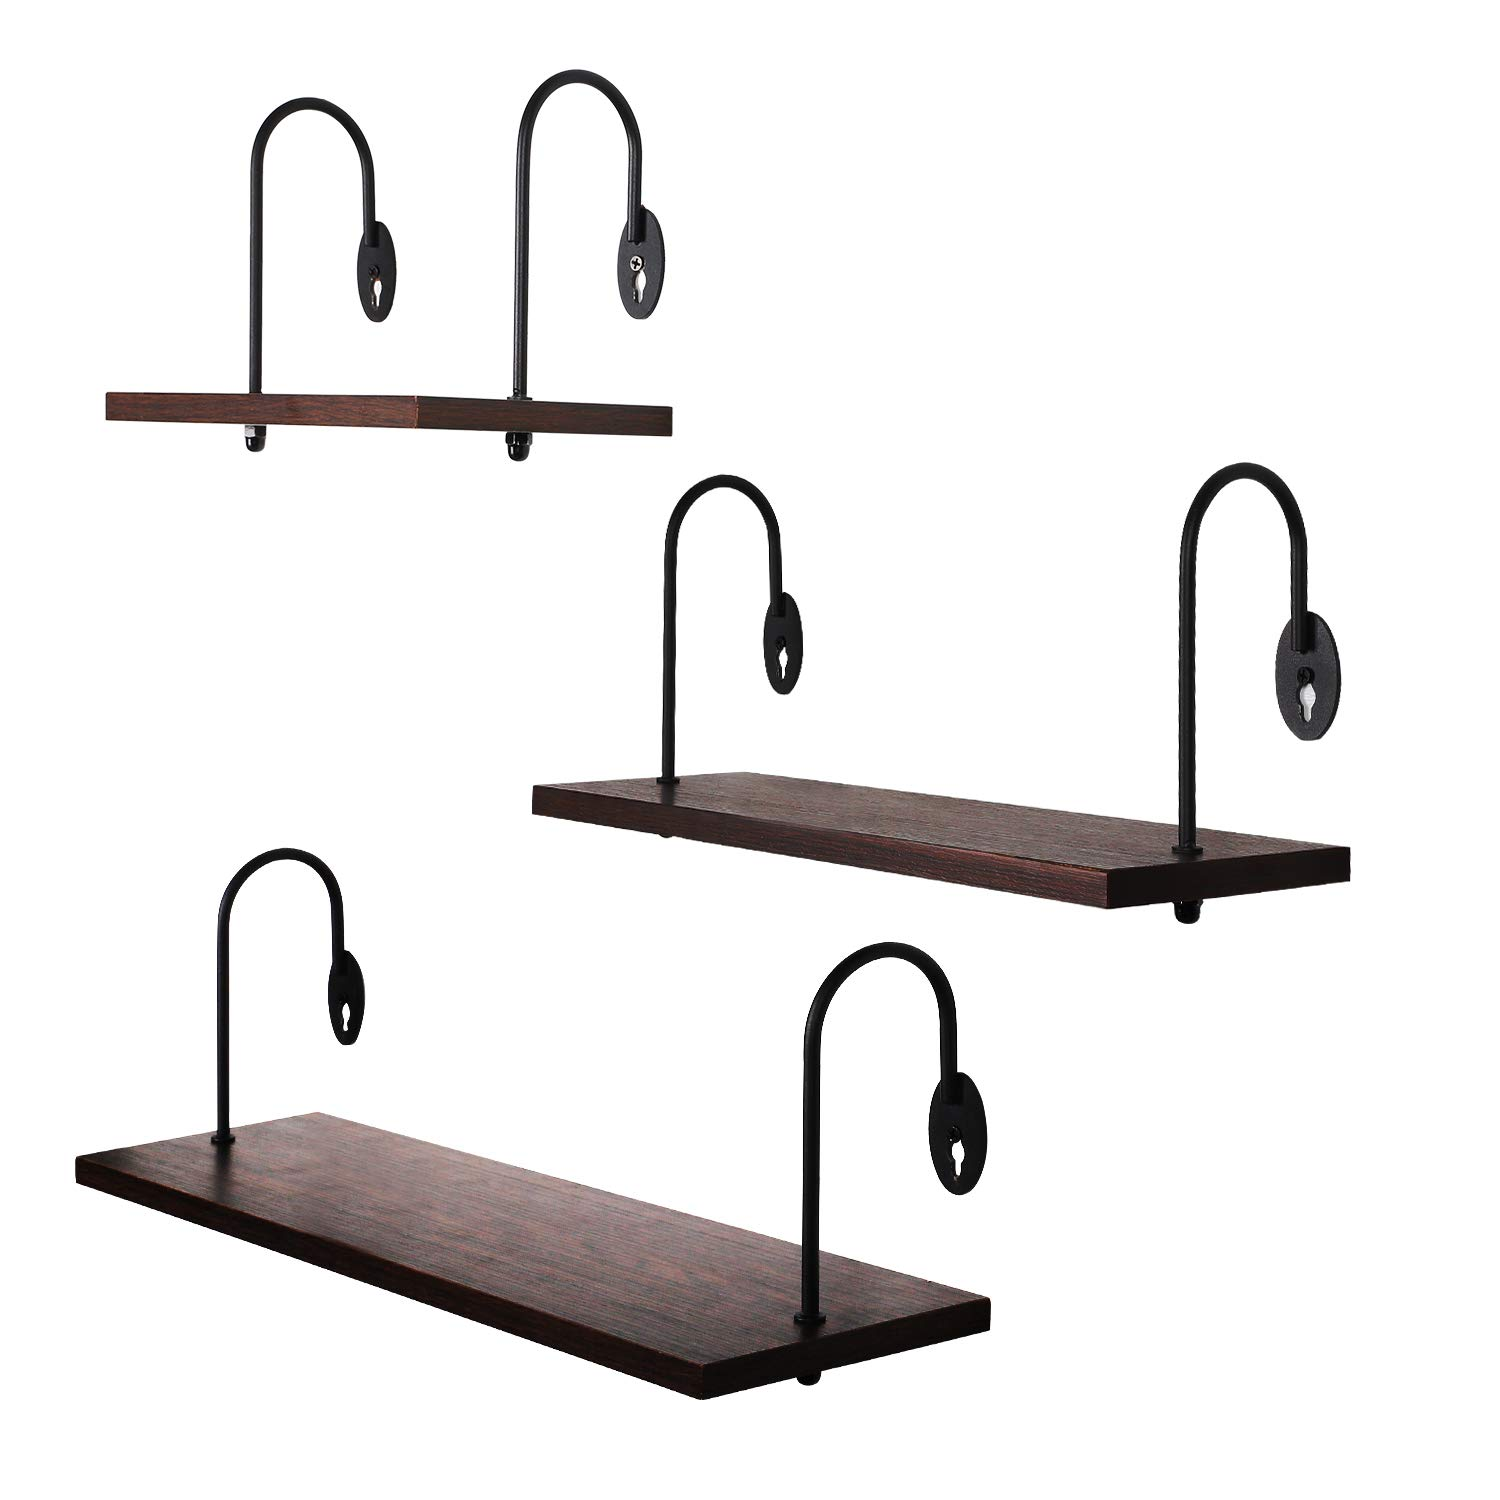 O-KIS Floating Shelves Wall Mounted, Set of 3 Rustic Wood Wall Shelves with Large Storage for Bedroom Bathroom Living Room Kitchen Office (Walnut Brown)